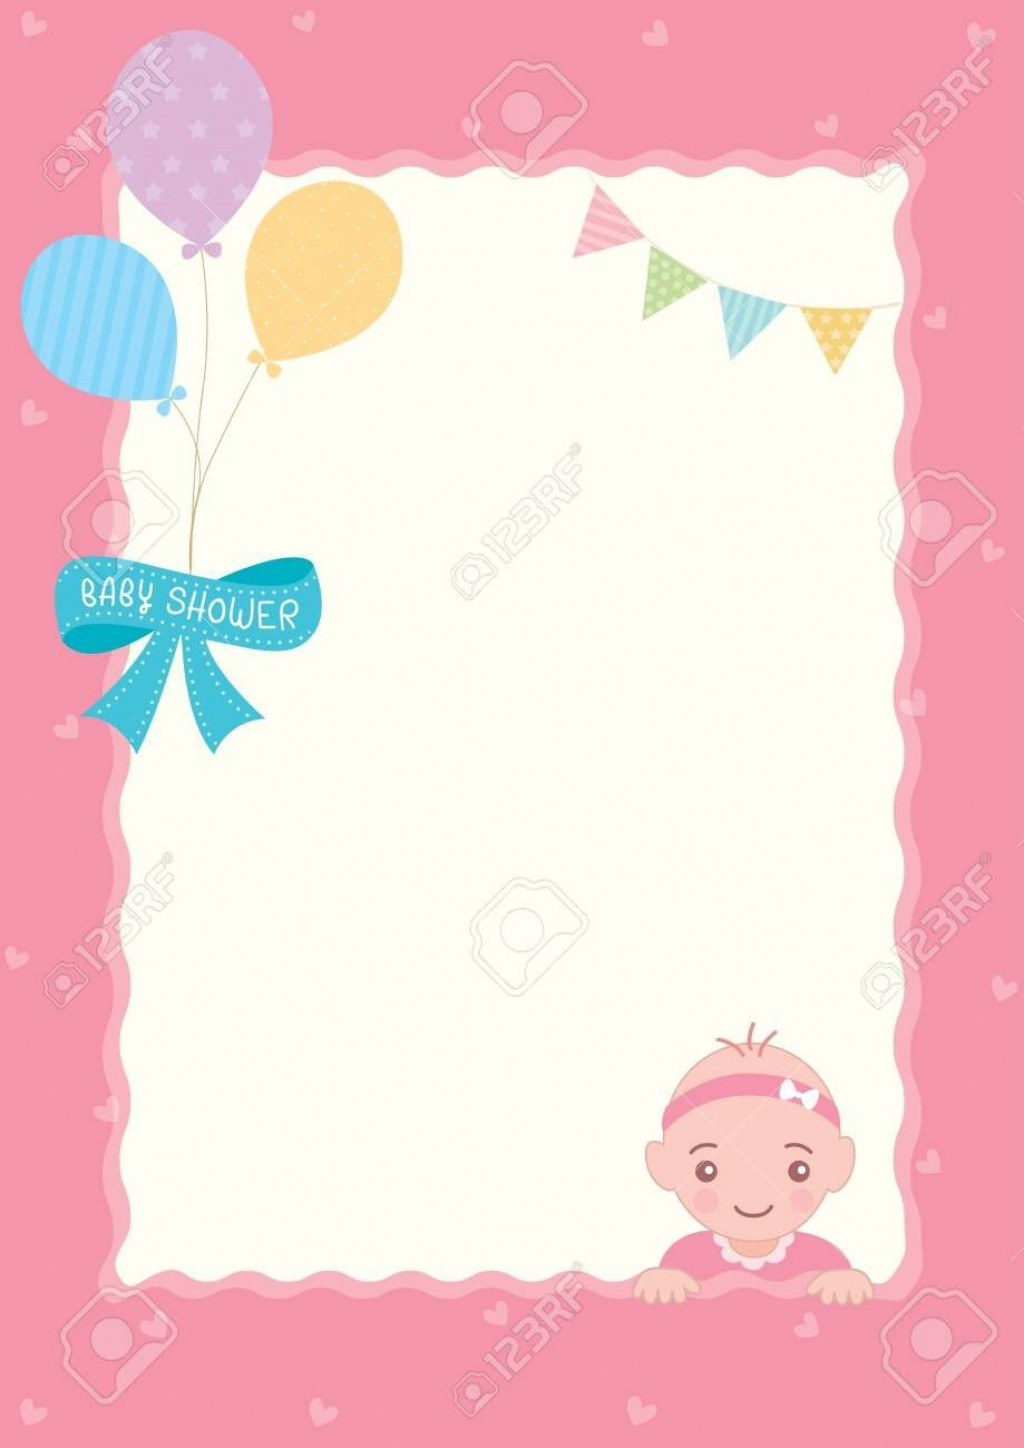 004 Top Baby Shower Template Girl Picture  Nautical Invitation Free For WordLarge